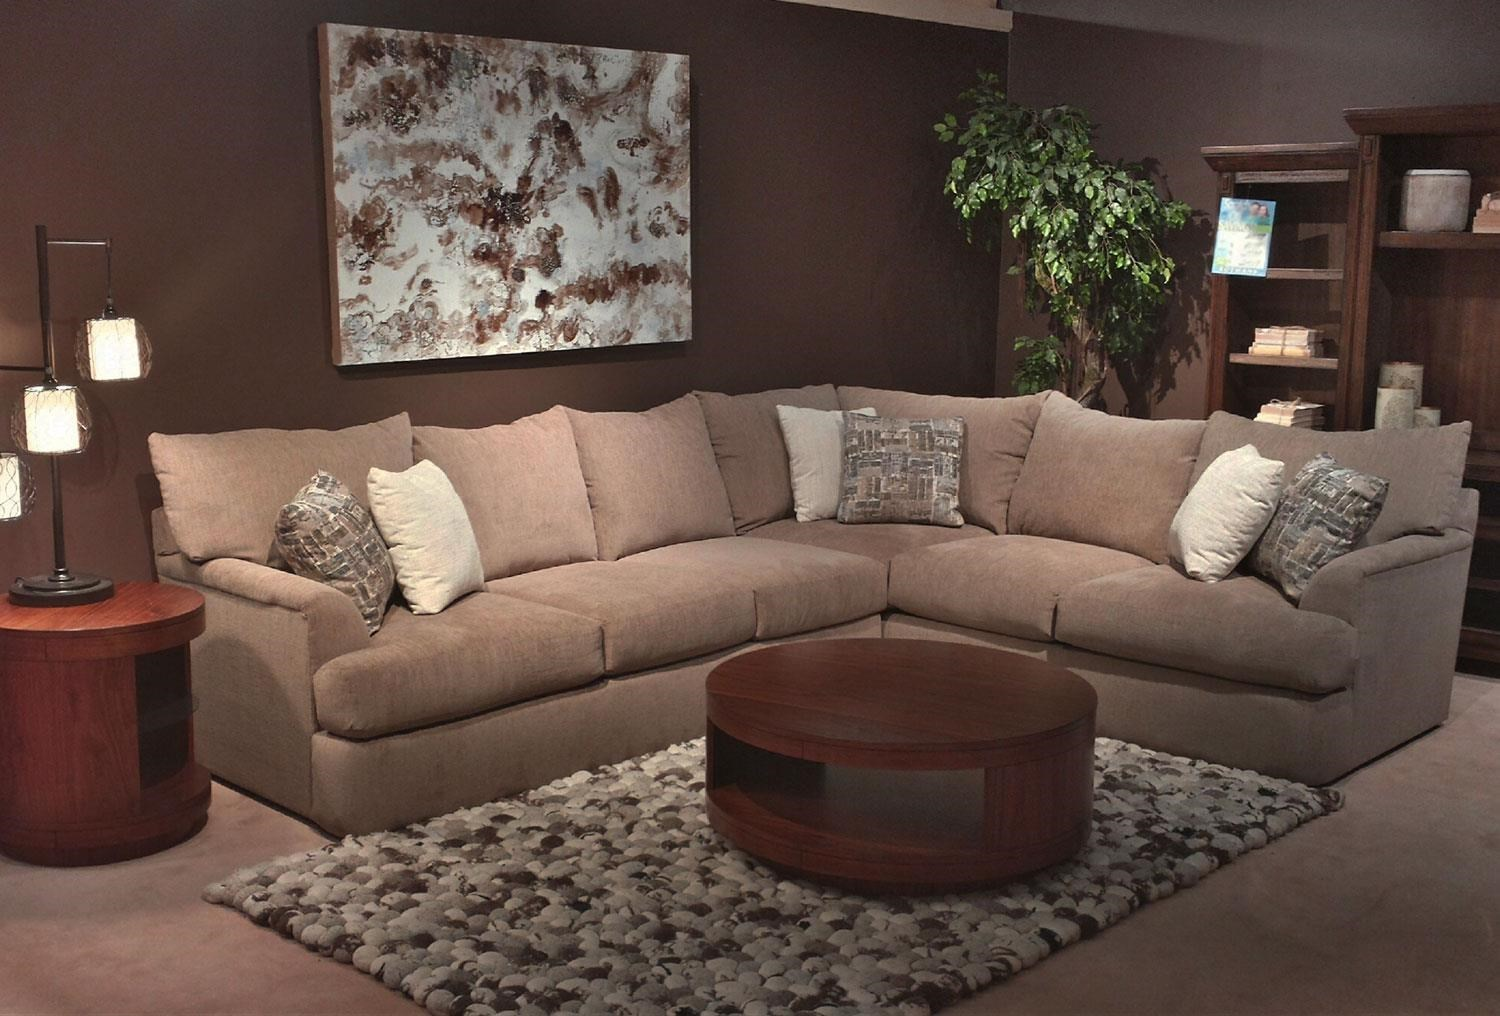 Ordinaire Shambala Contemporary L Shaped Sectional Sofa